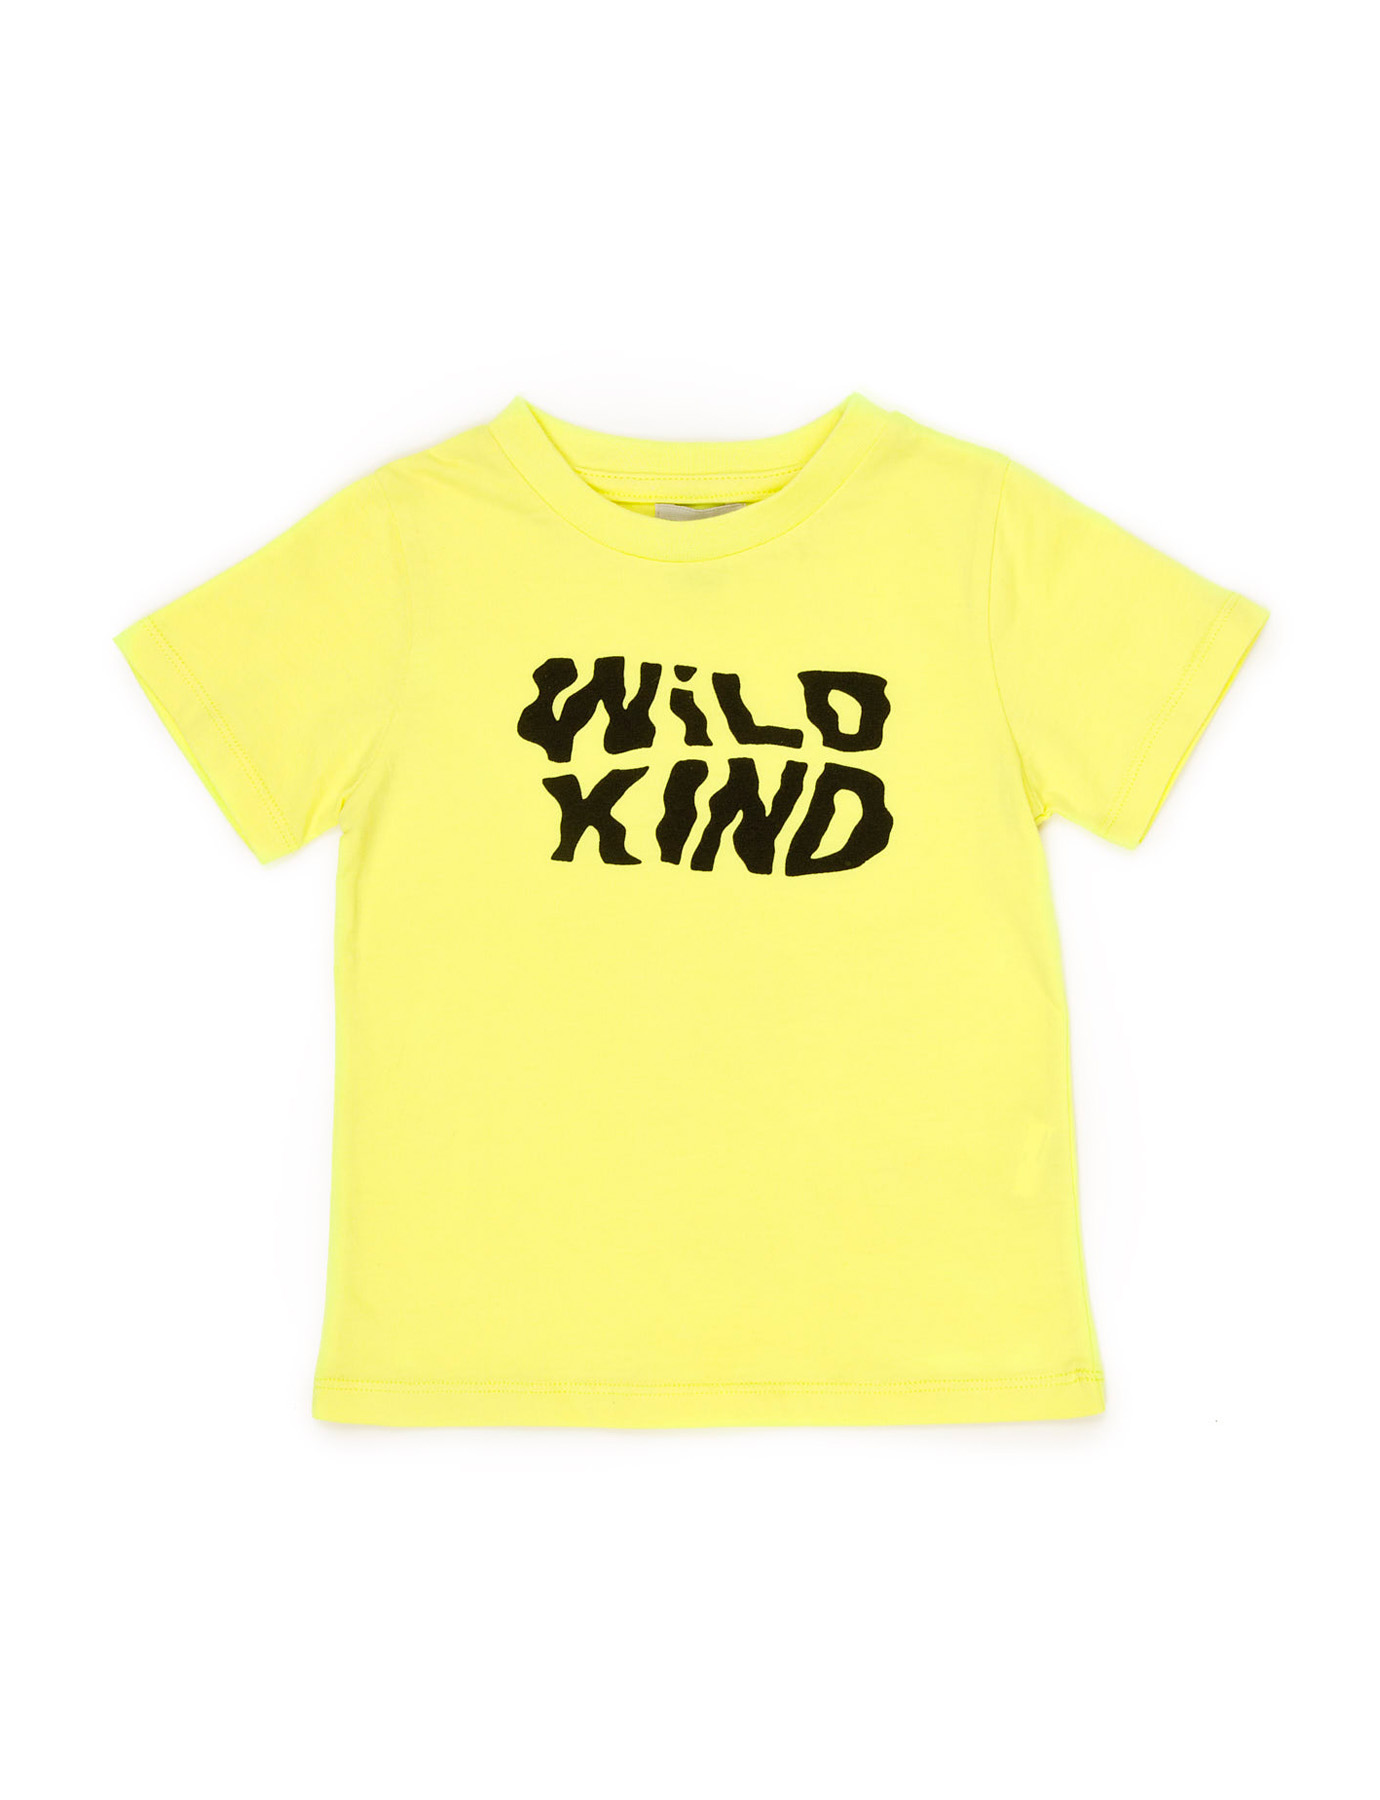 Beatrice_tshirt_yellow_baby_29€.jpg